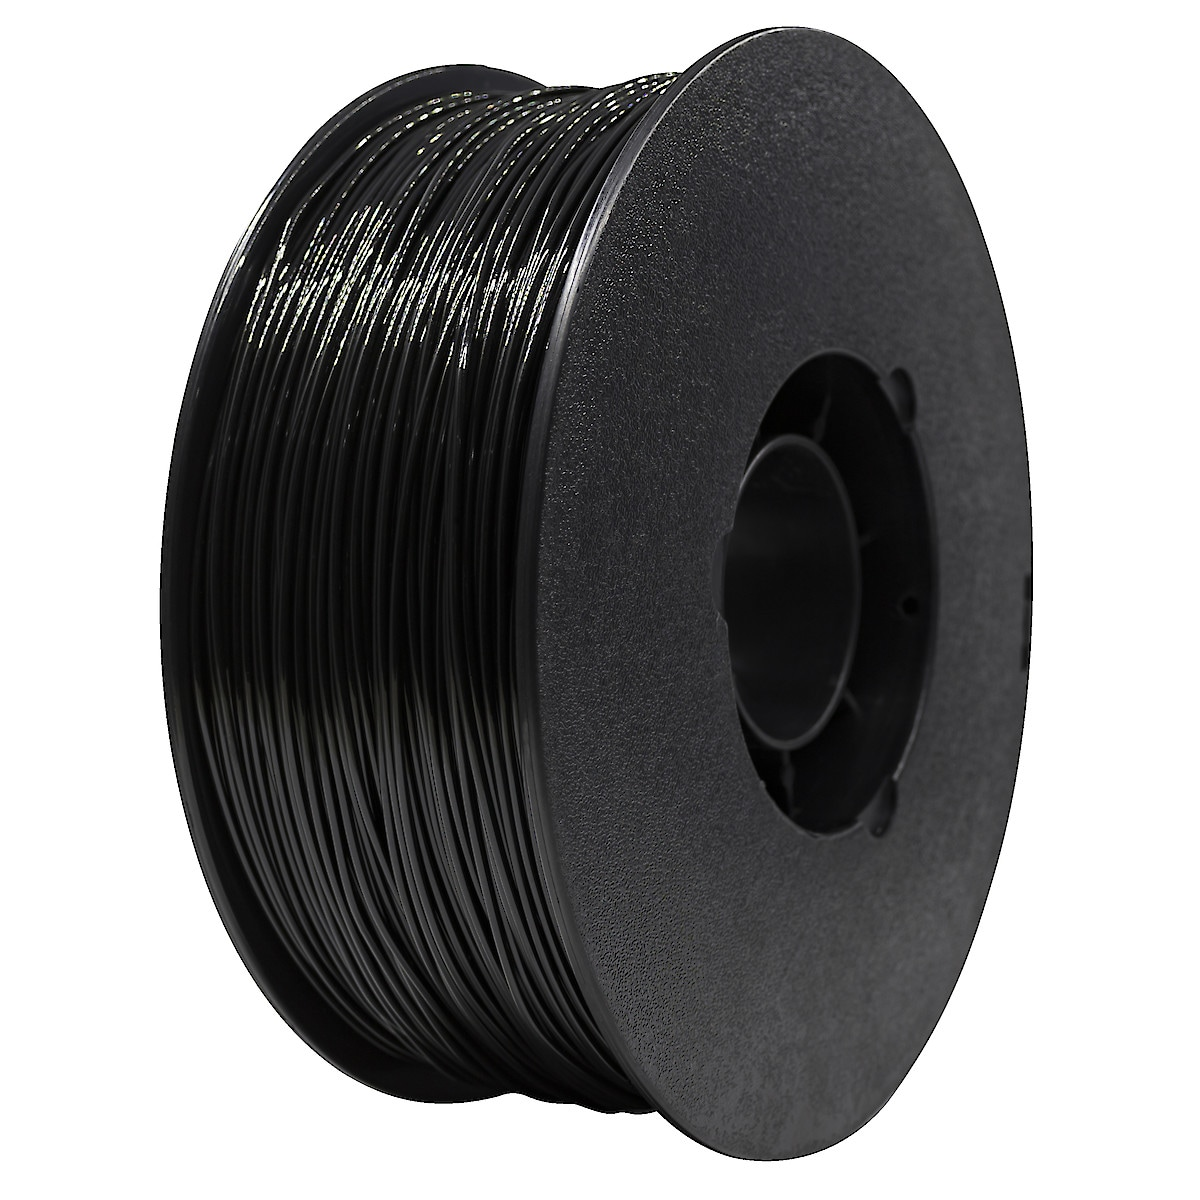 Clas Ohlson PETG Filament for 3D Printers